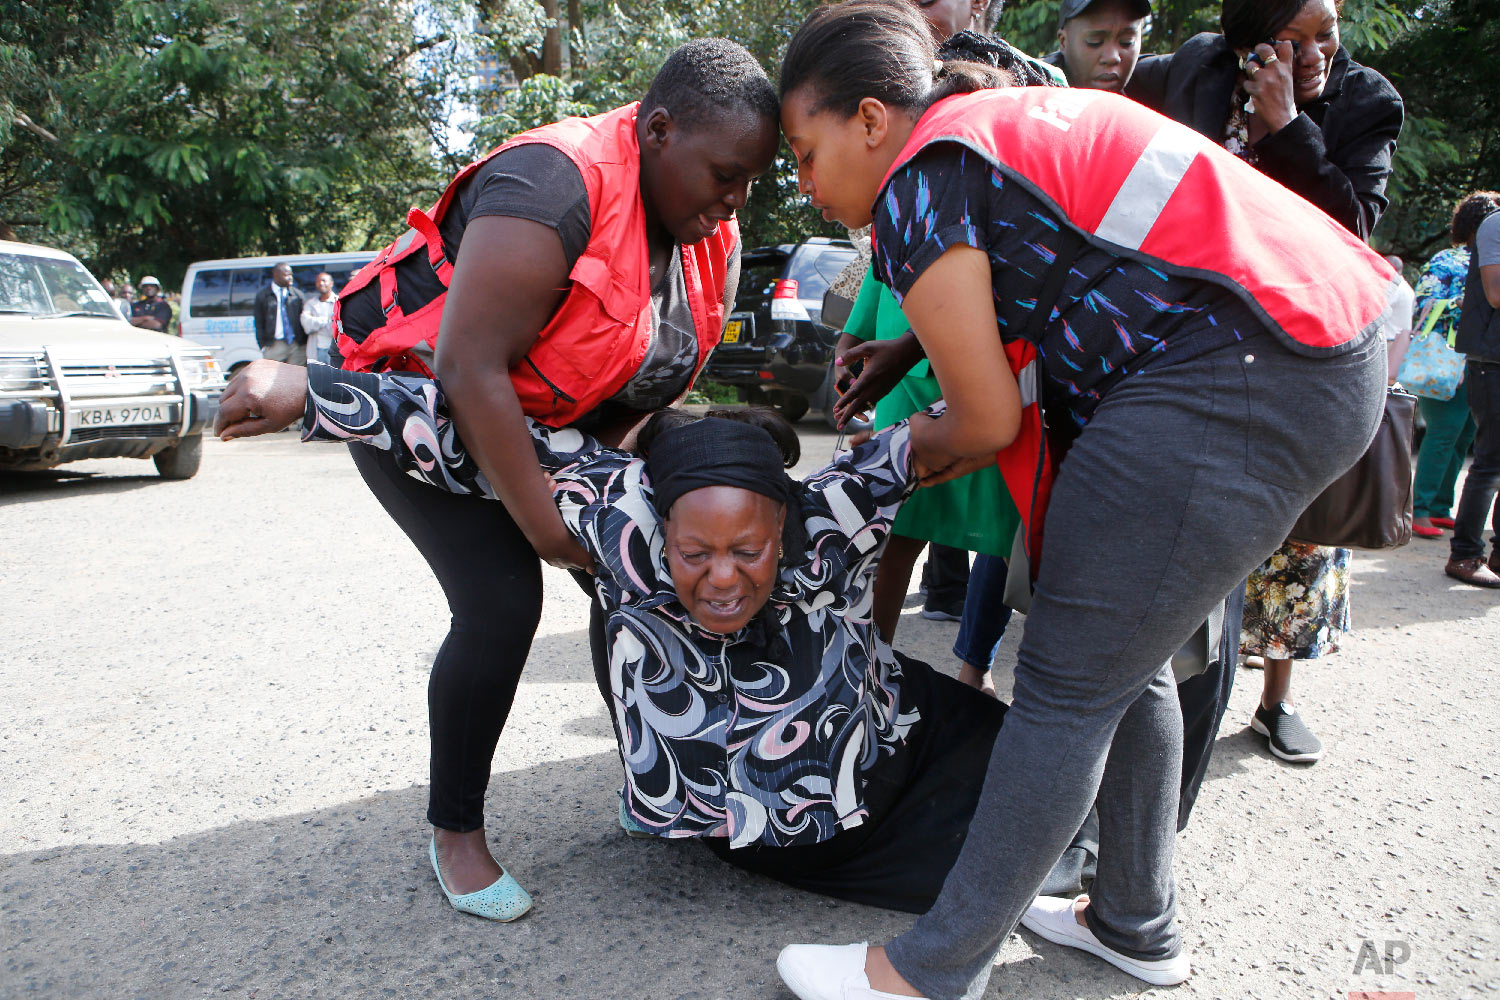 Kenya Red Cross personnel helps a woman reacting after learning of a family member killed during a recent terrorist attack, Jan. 16 2019, at the Chiromo Mortuary, Nairobi, Kenya. (AP Photo/Brian Inganga)